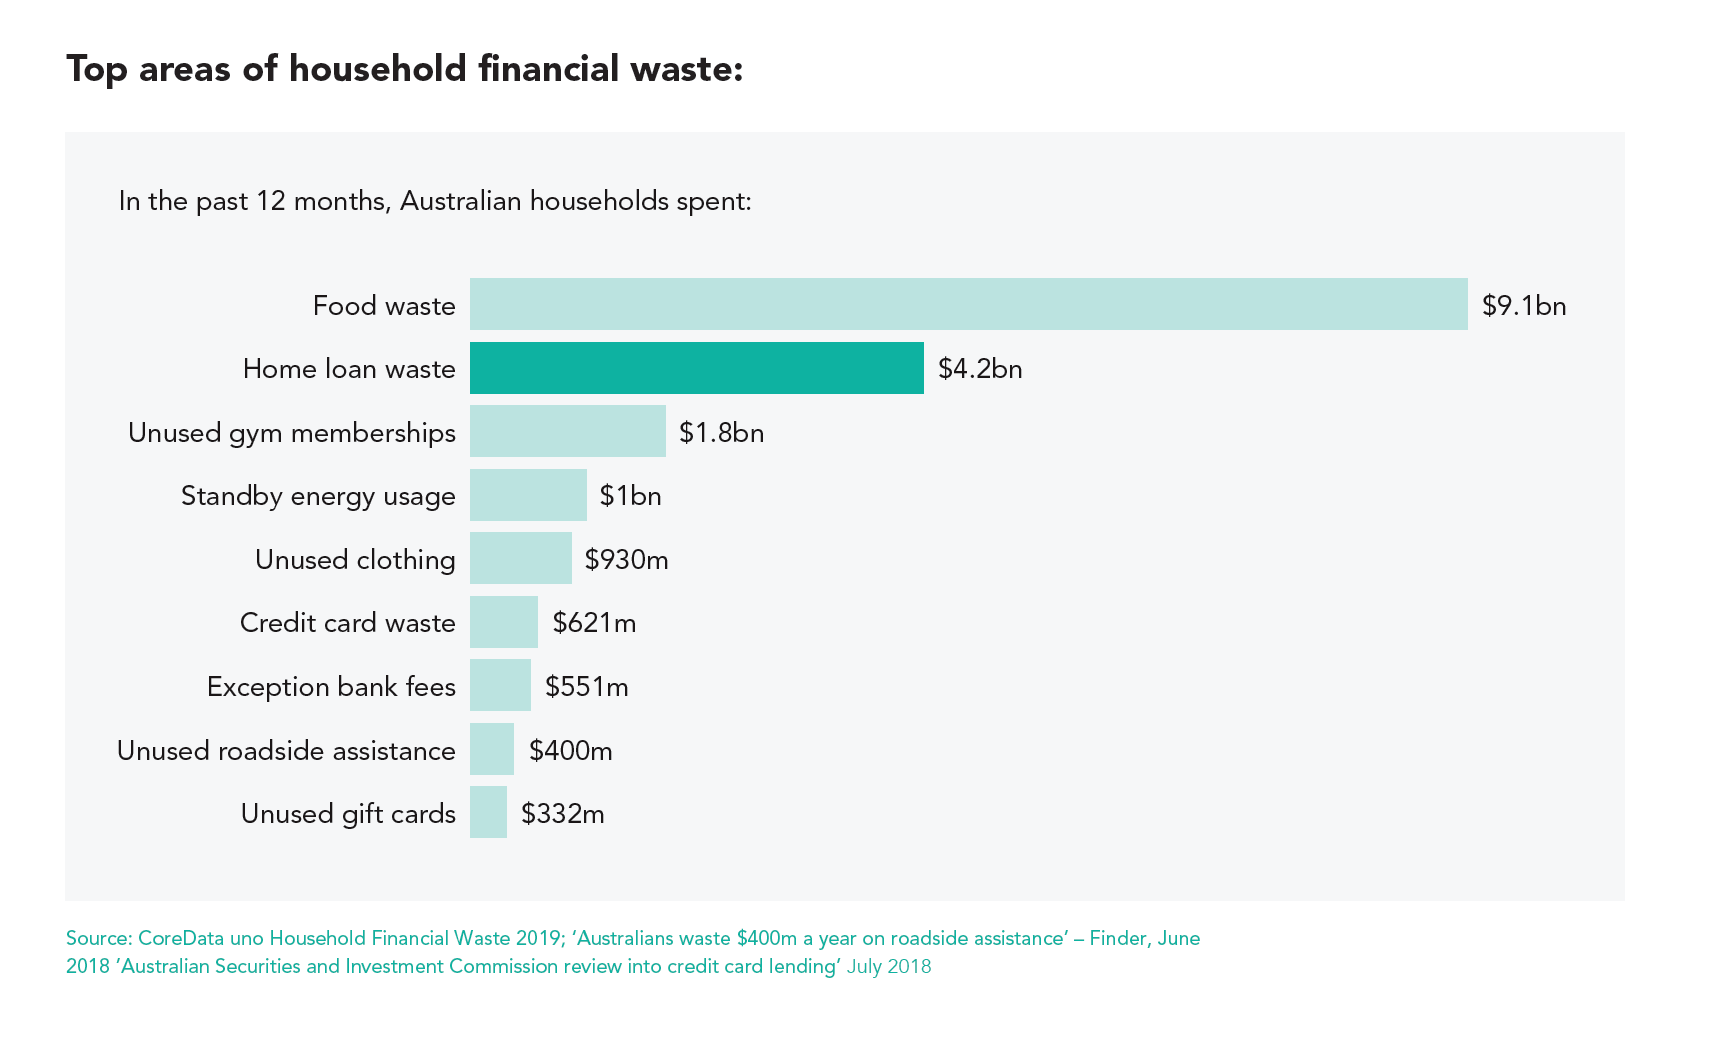 Top areas of household financial waste